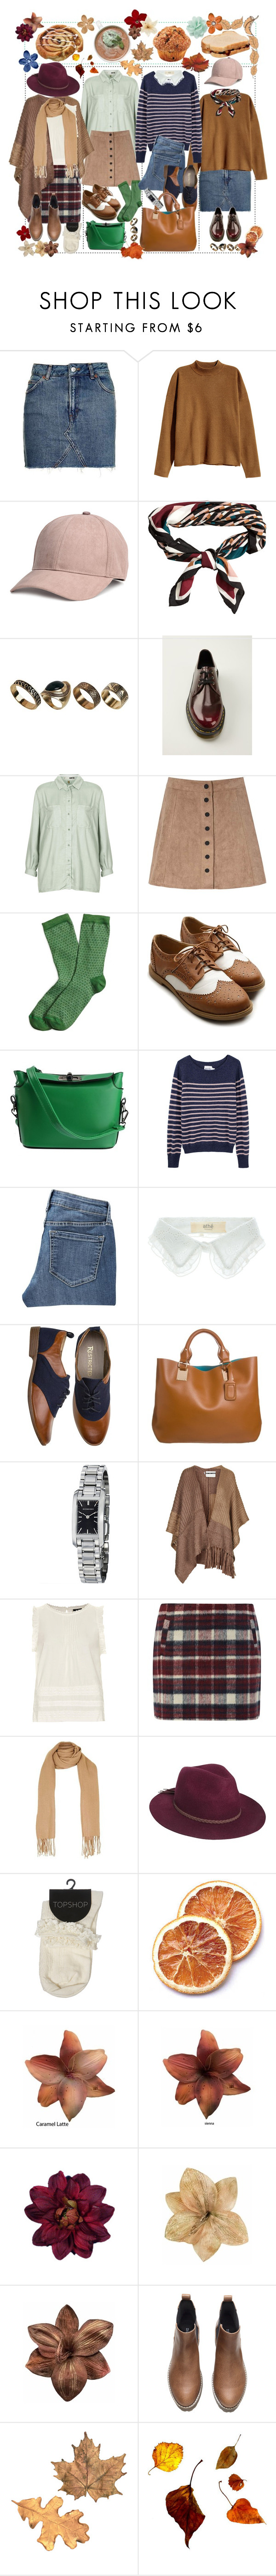 """// F A L L //"" by francesca-valentina-gagliardi ❤ liked on Polyvore featuring Topshop, H&M, ALDO, Dr. Martens, Glamorous, Brooks Brothers, Ollio, Steven Alan, Old Navy and Vanessa Bruno Athé"